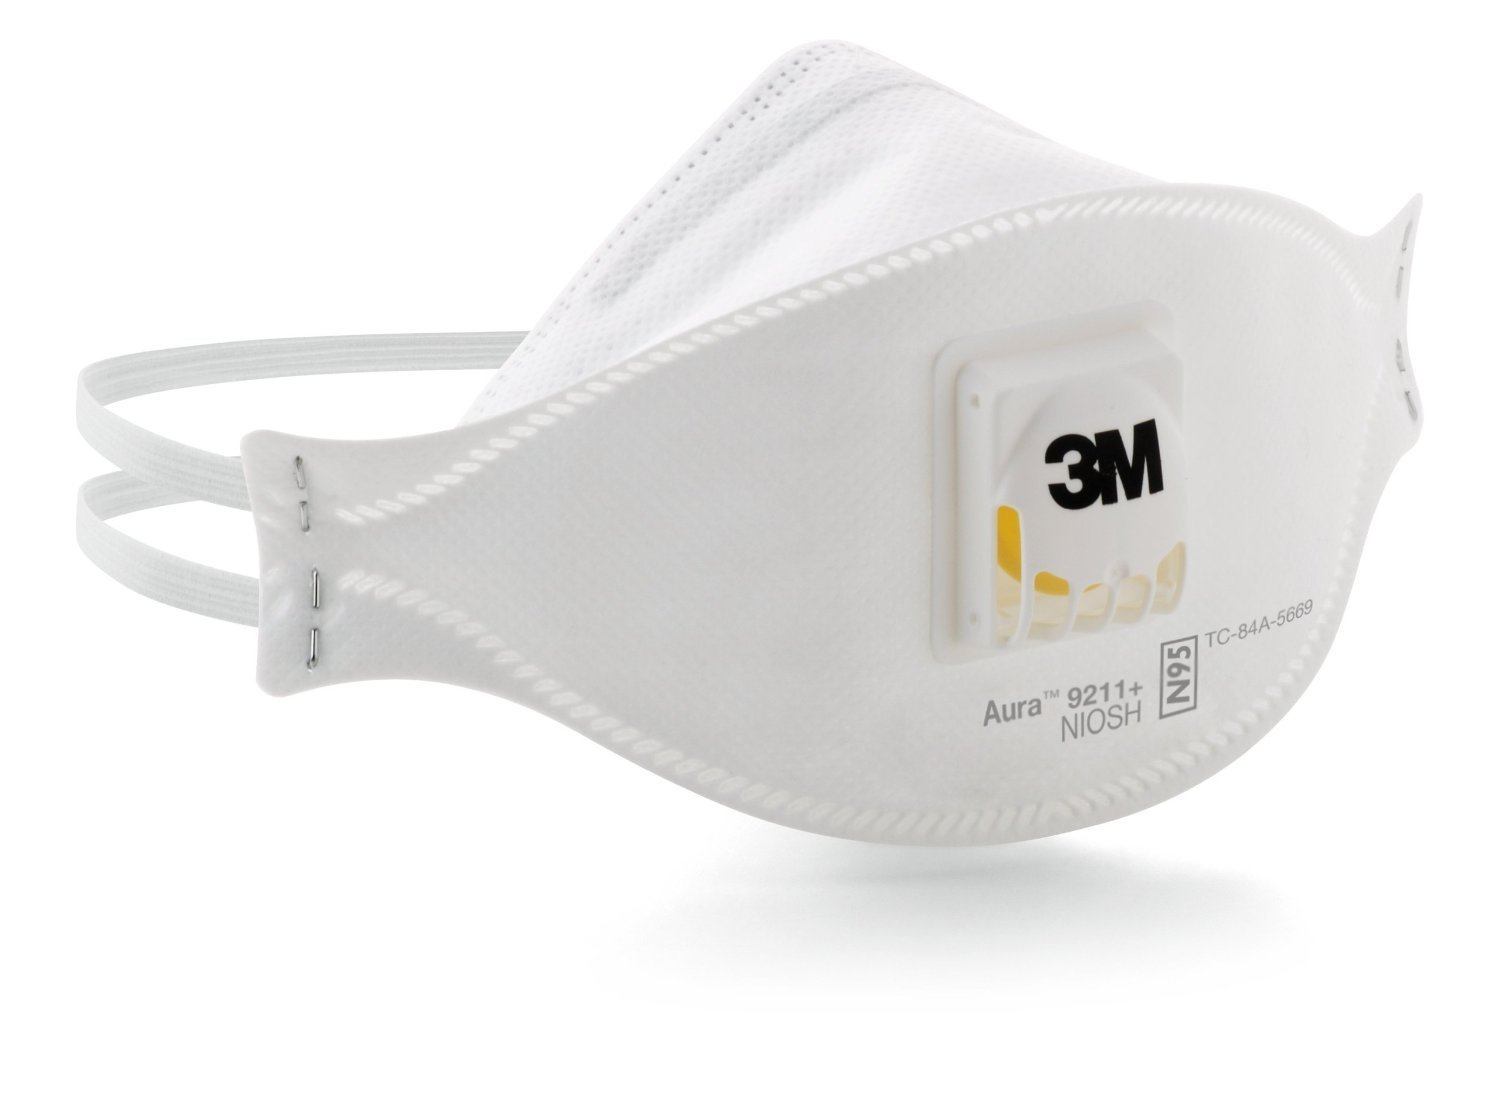 3M Aura Particulate Respirator 9211+/37193(AAD) N95, Stapled Flat Fold Disposable, Exhalation Valve, 10 Per Box, 120 Dust Masks (Case of 12)